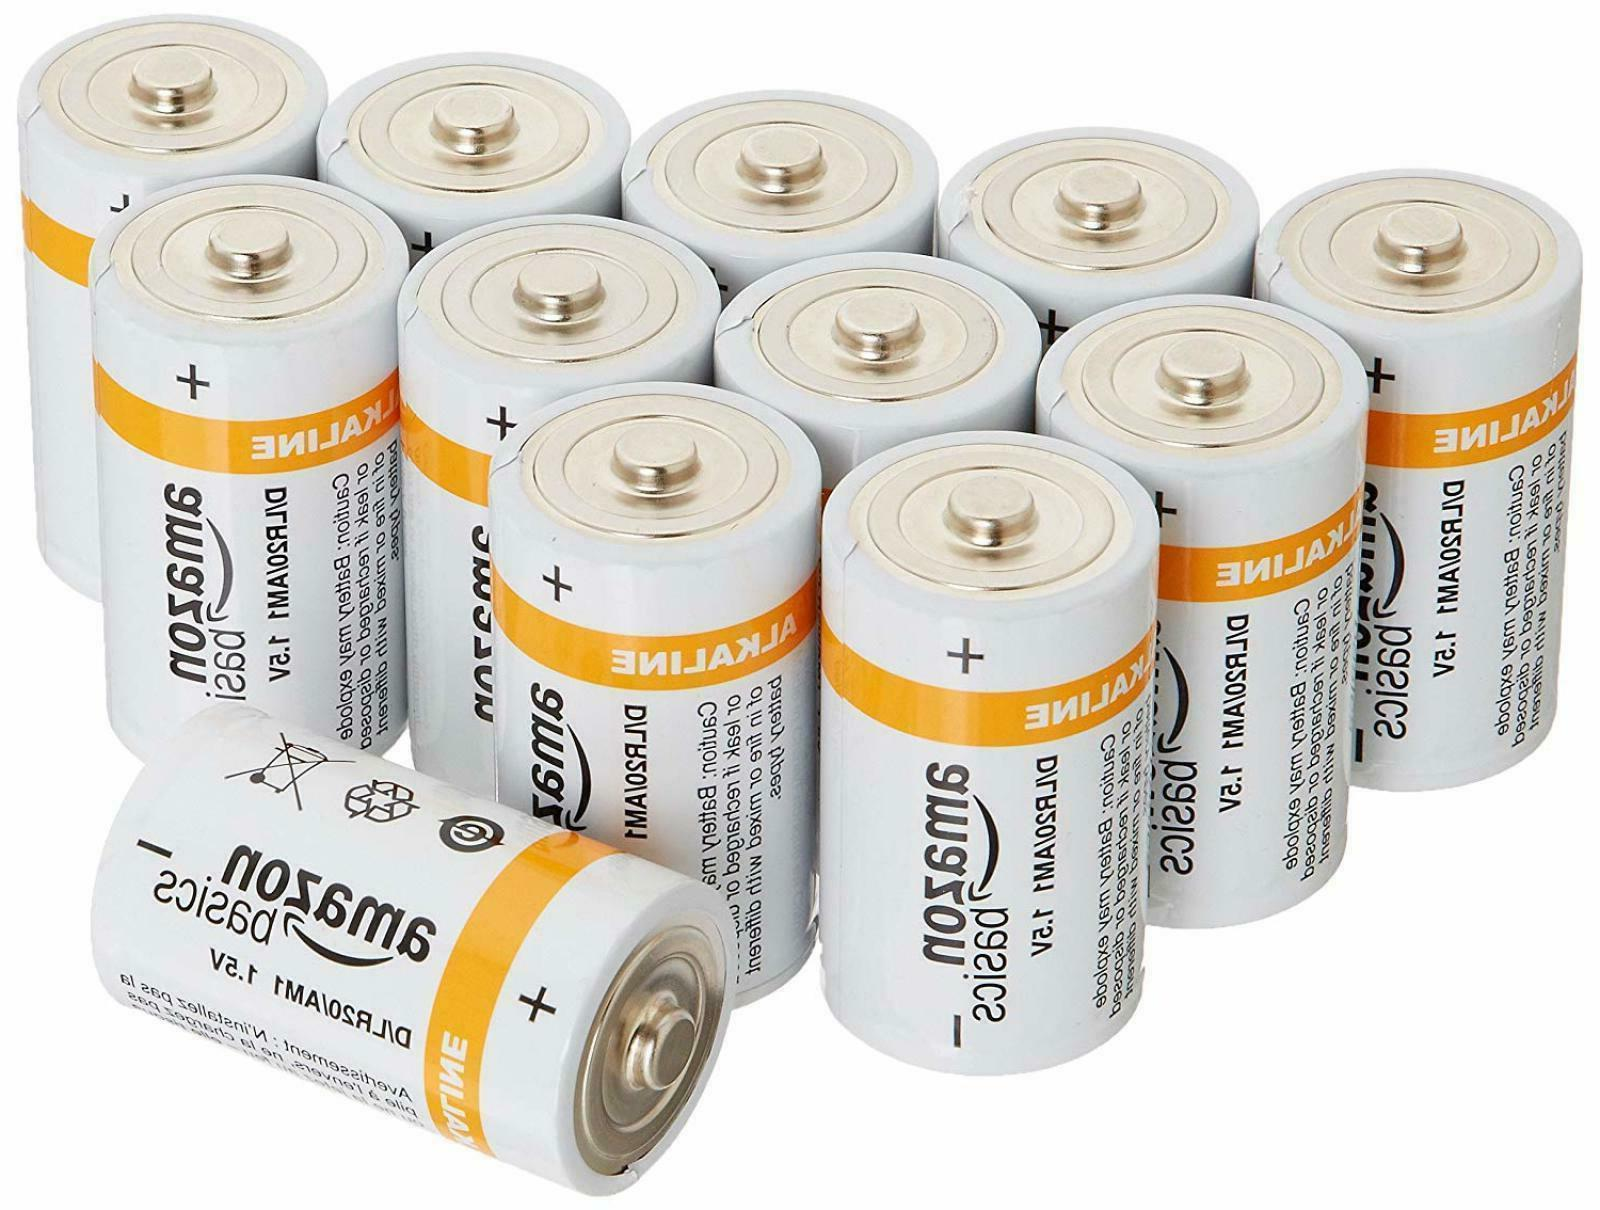 new d cell everyday alkaline batteries 12